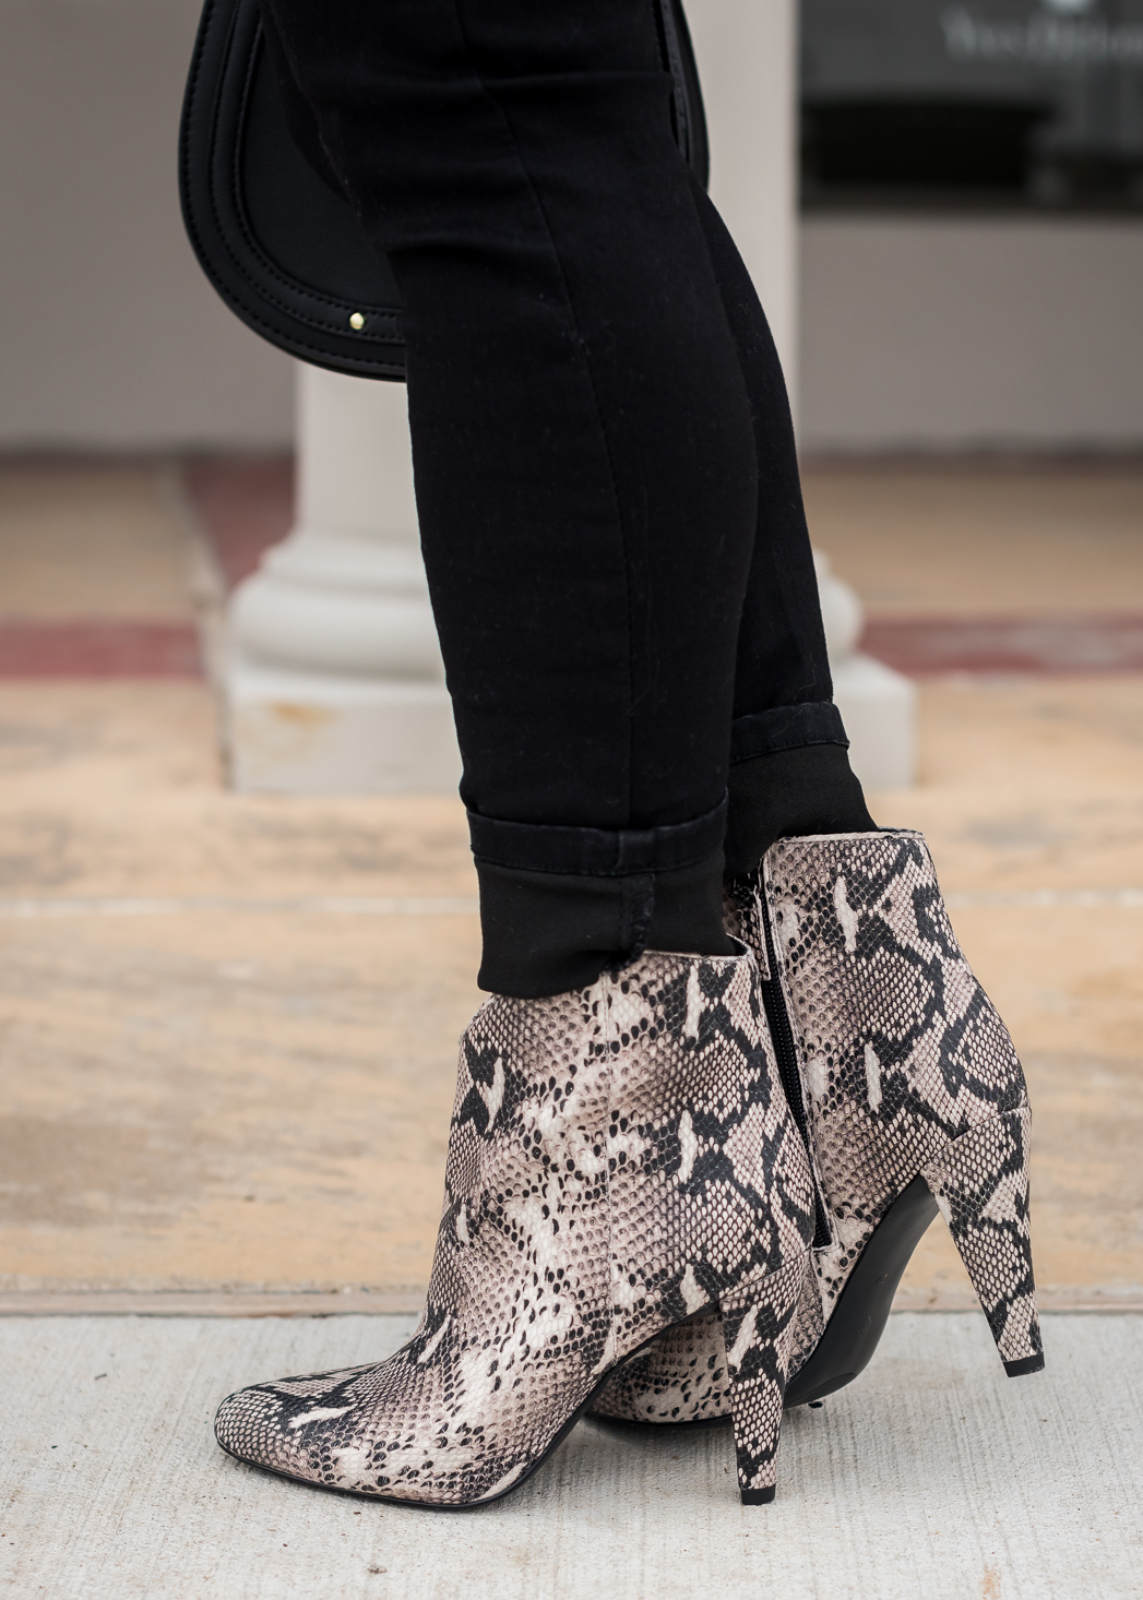 How to Style Ankle Booties - snakeskin boots and black jeans (2)